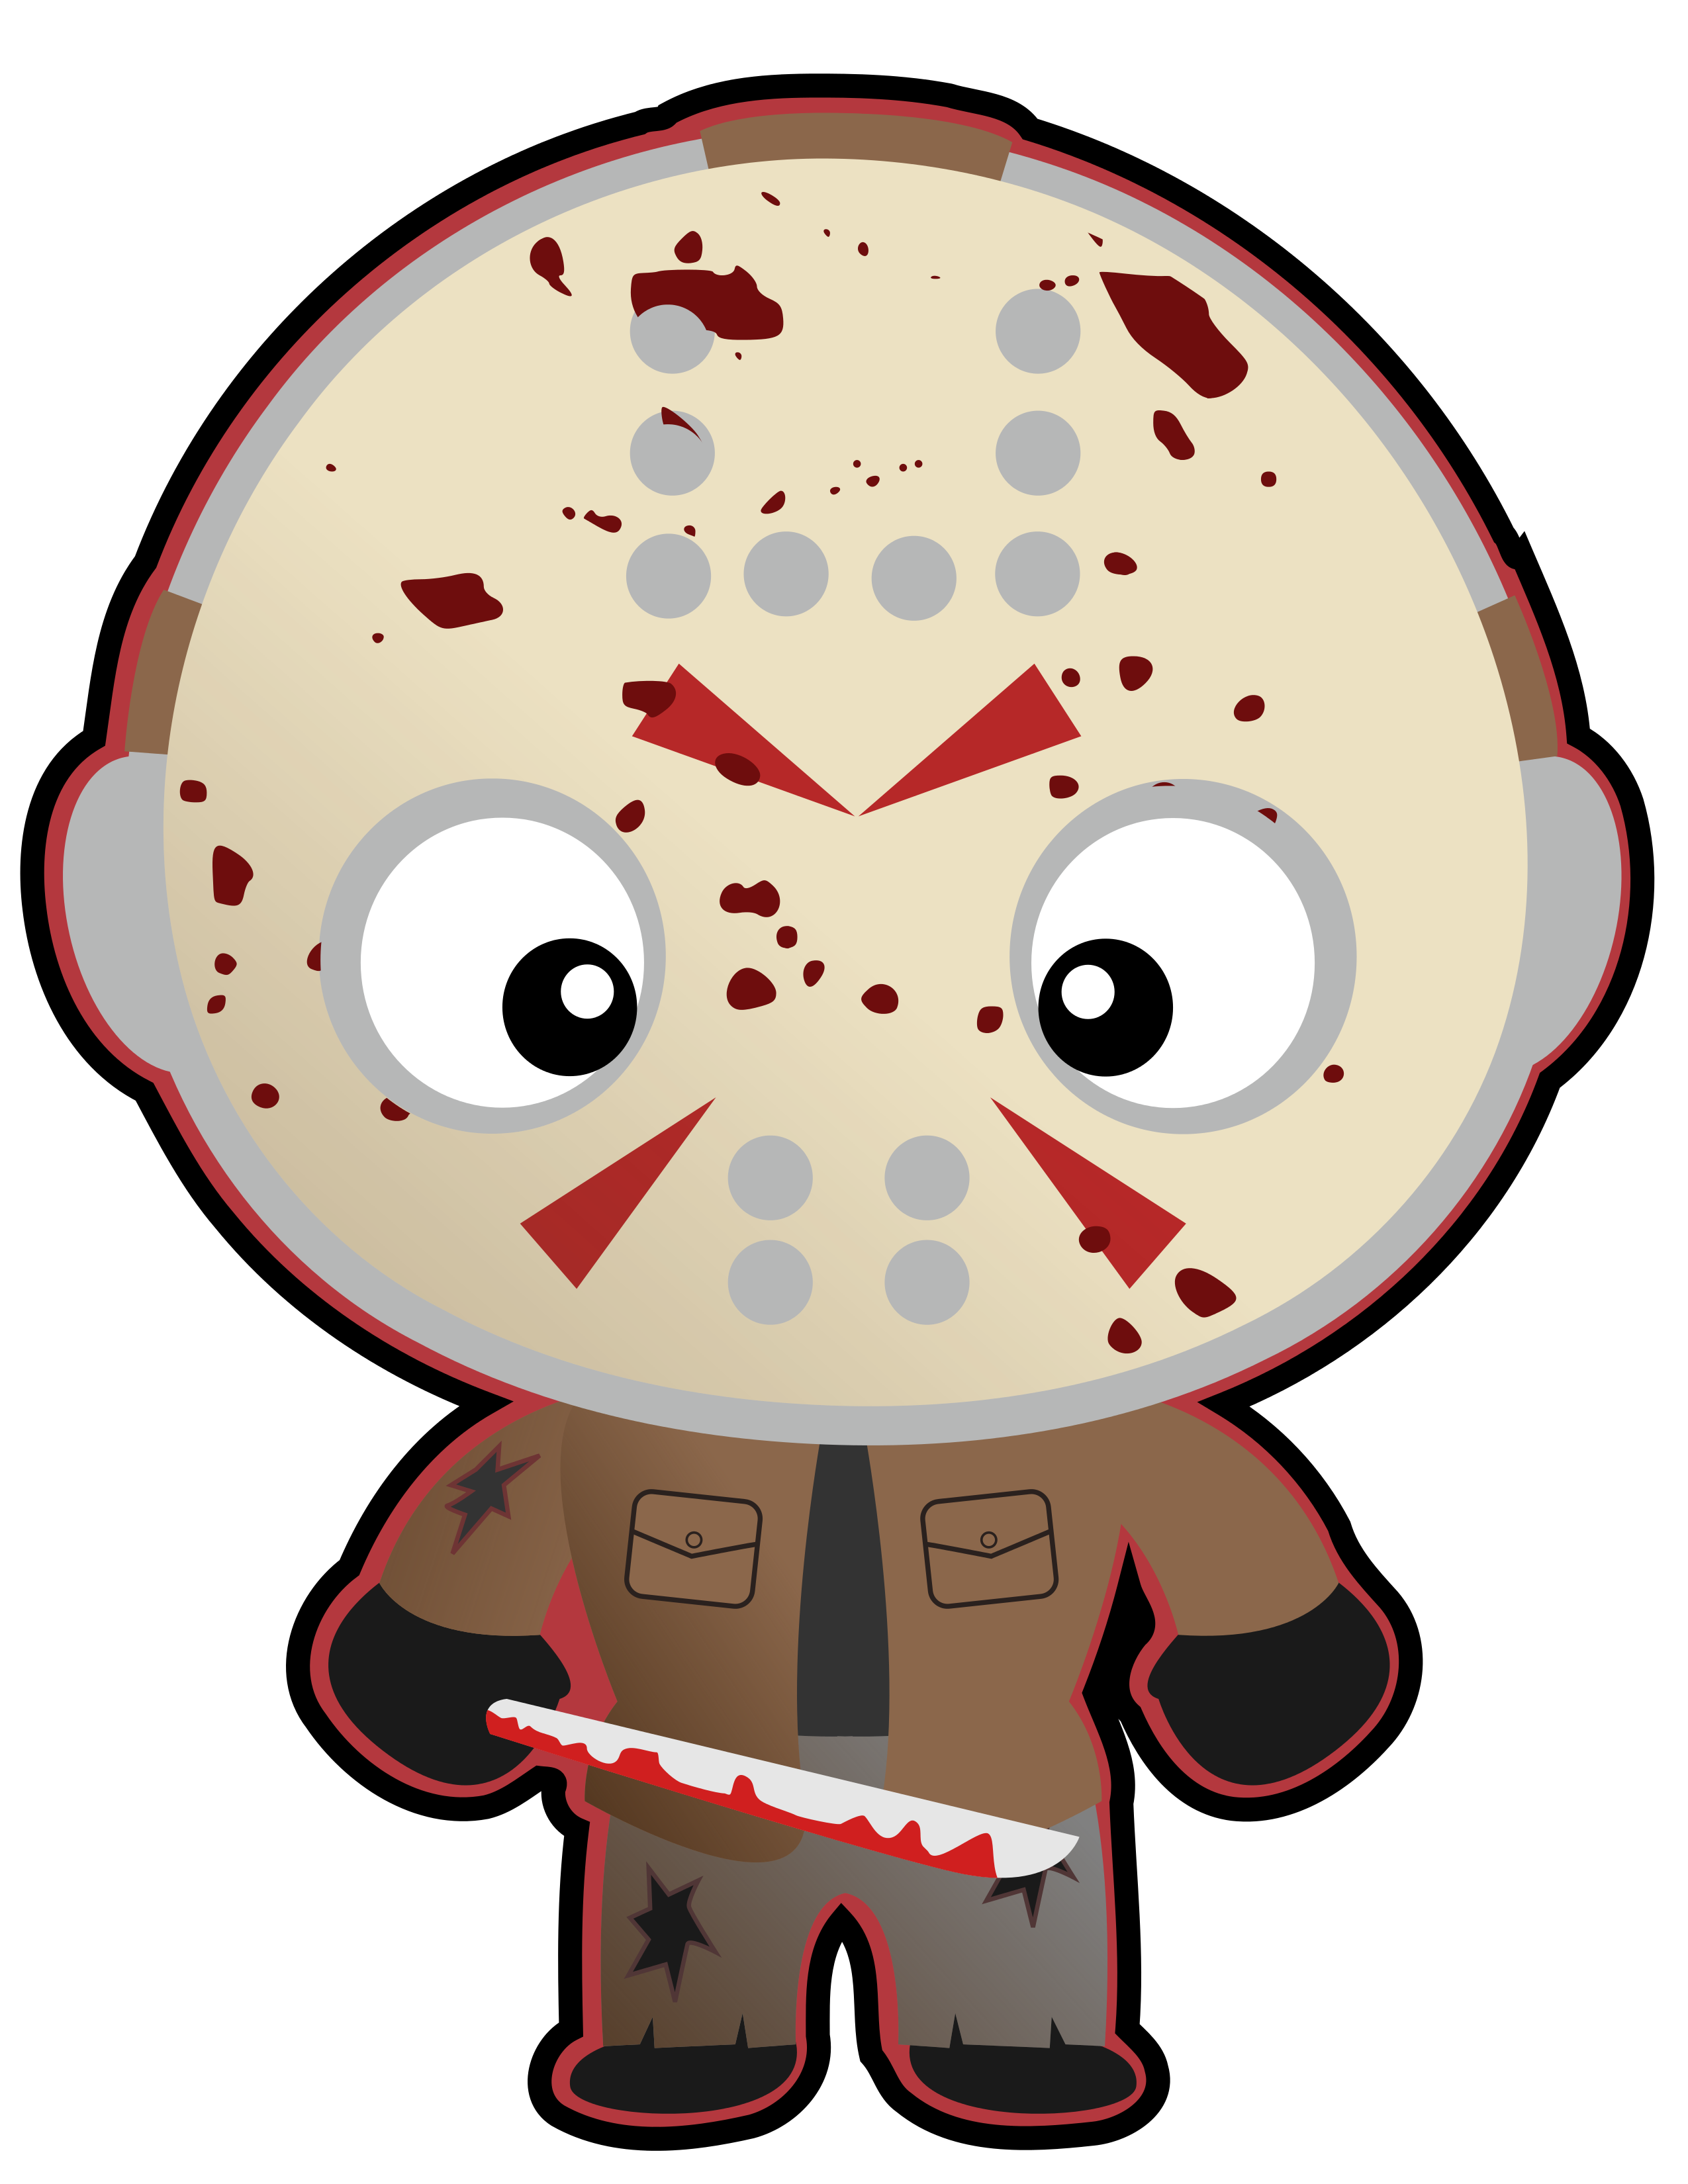 Halloween Clipart Frankenstein S Monster Jason Voorhees Leatherface Michael Myers Pinhead Pennywise Instant Download Cute Funko Halloween Clipart Clip Art Art Party Invitations